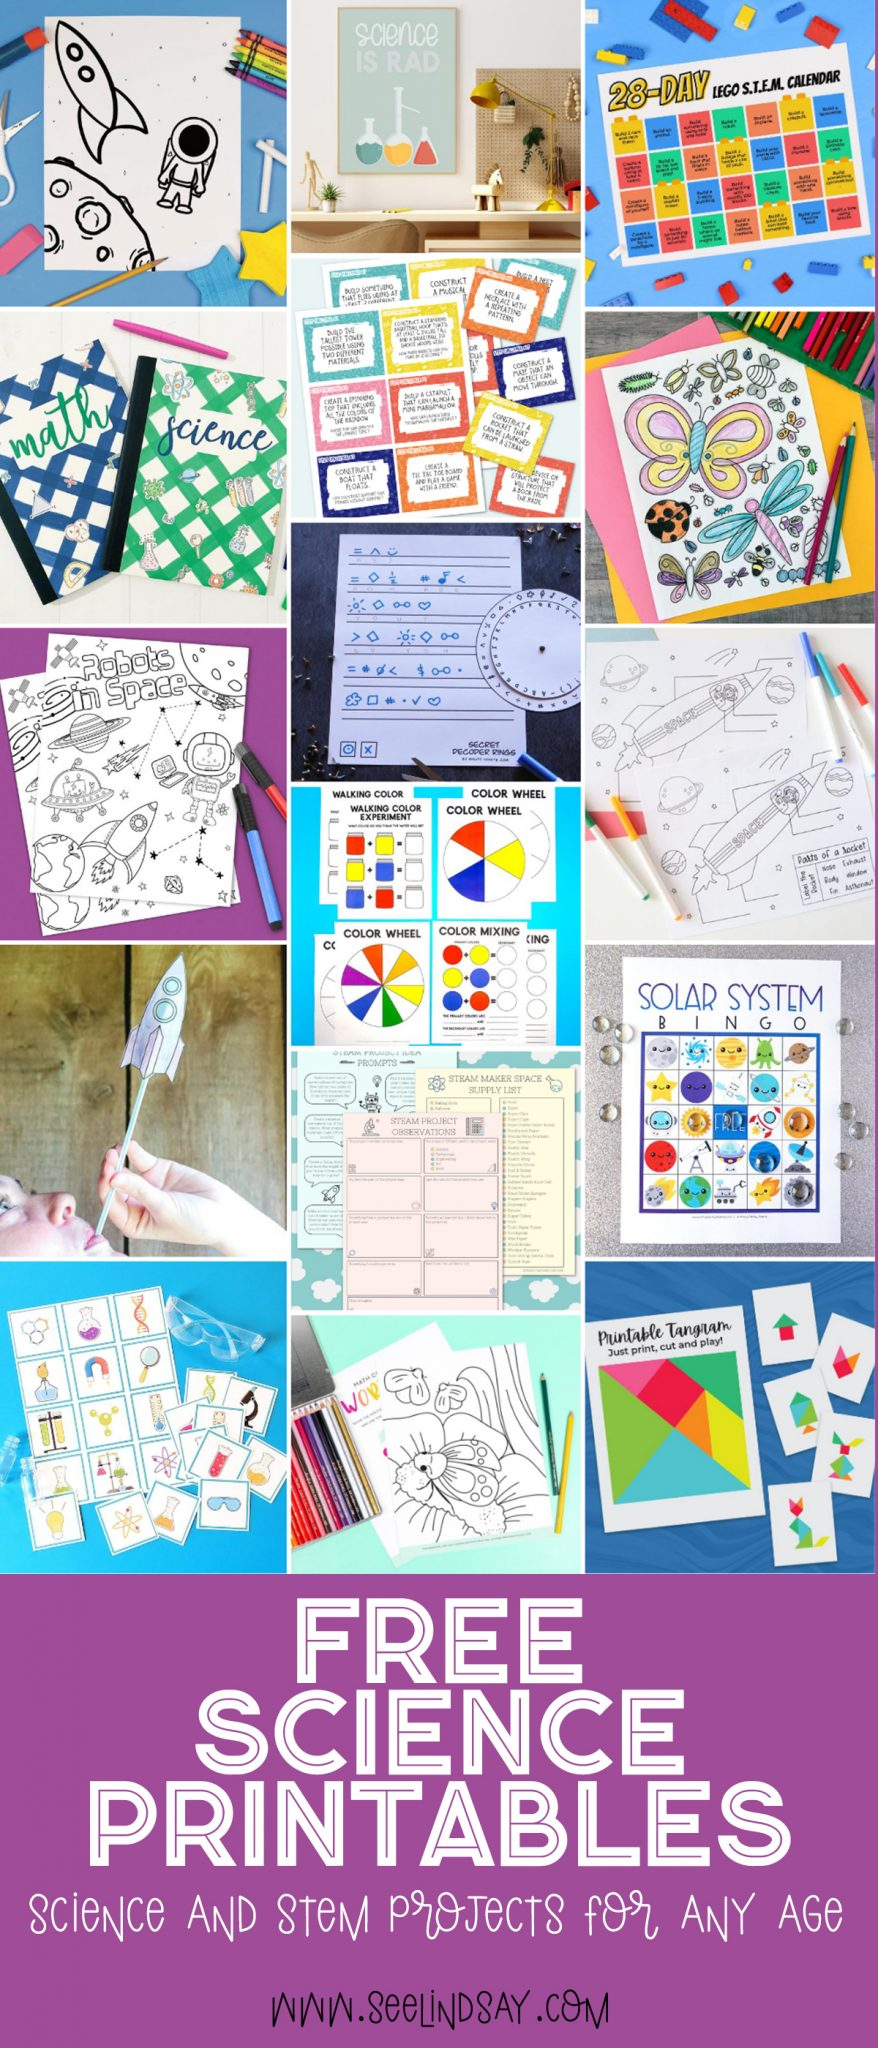 free science and stem printables